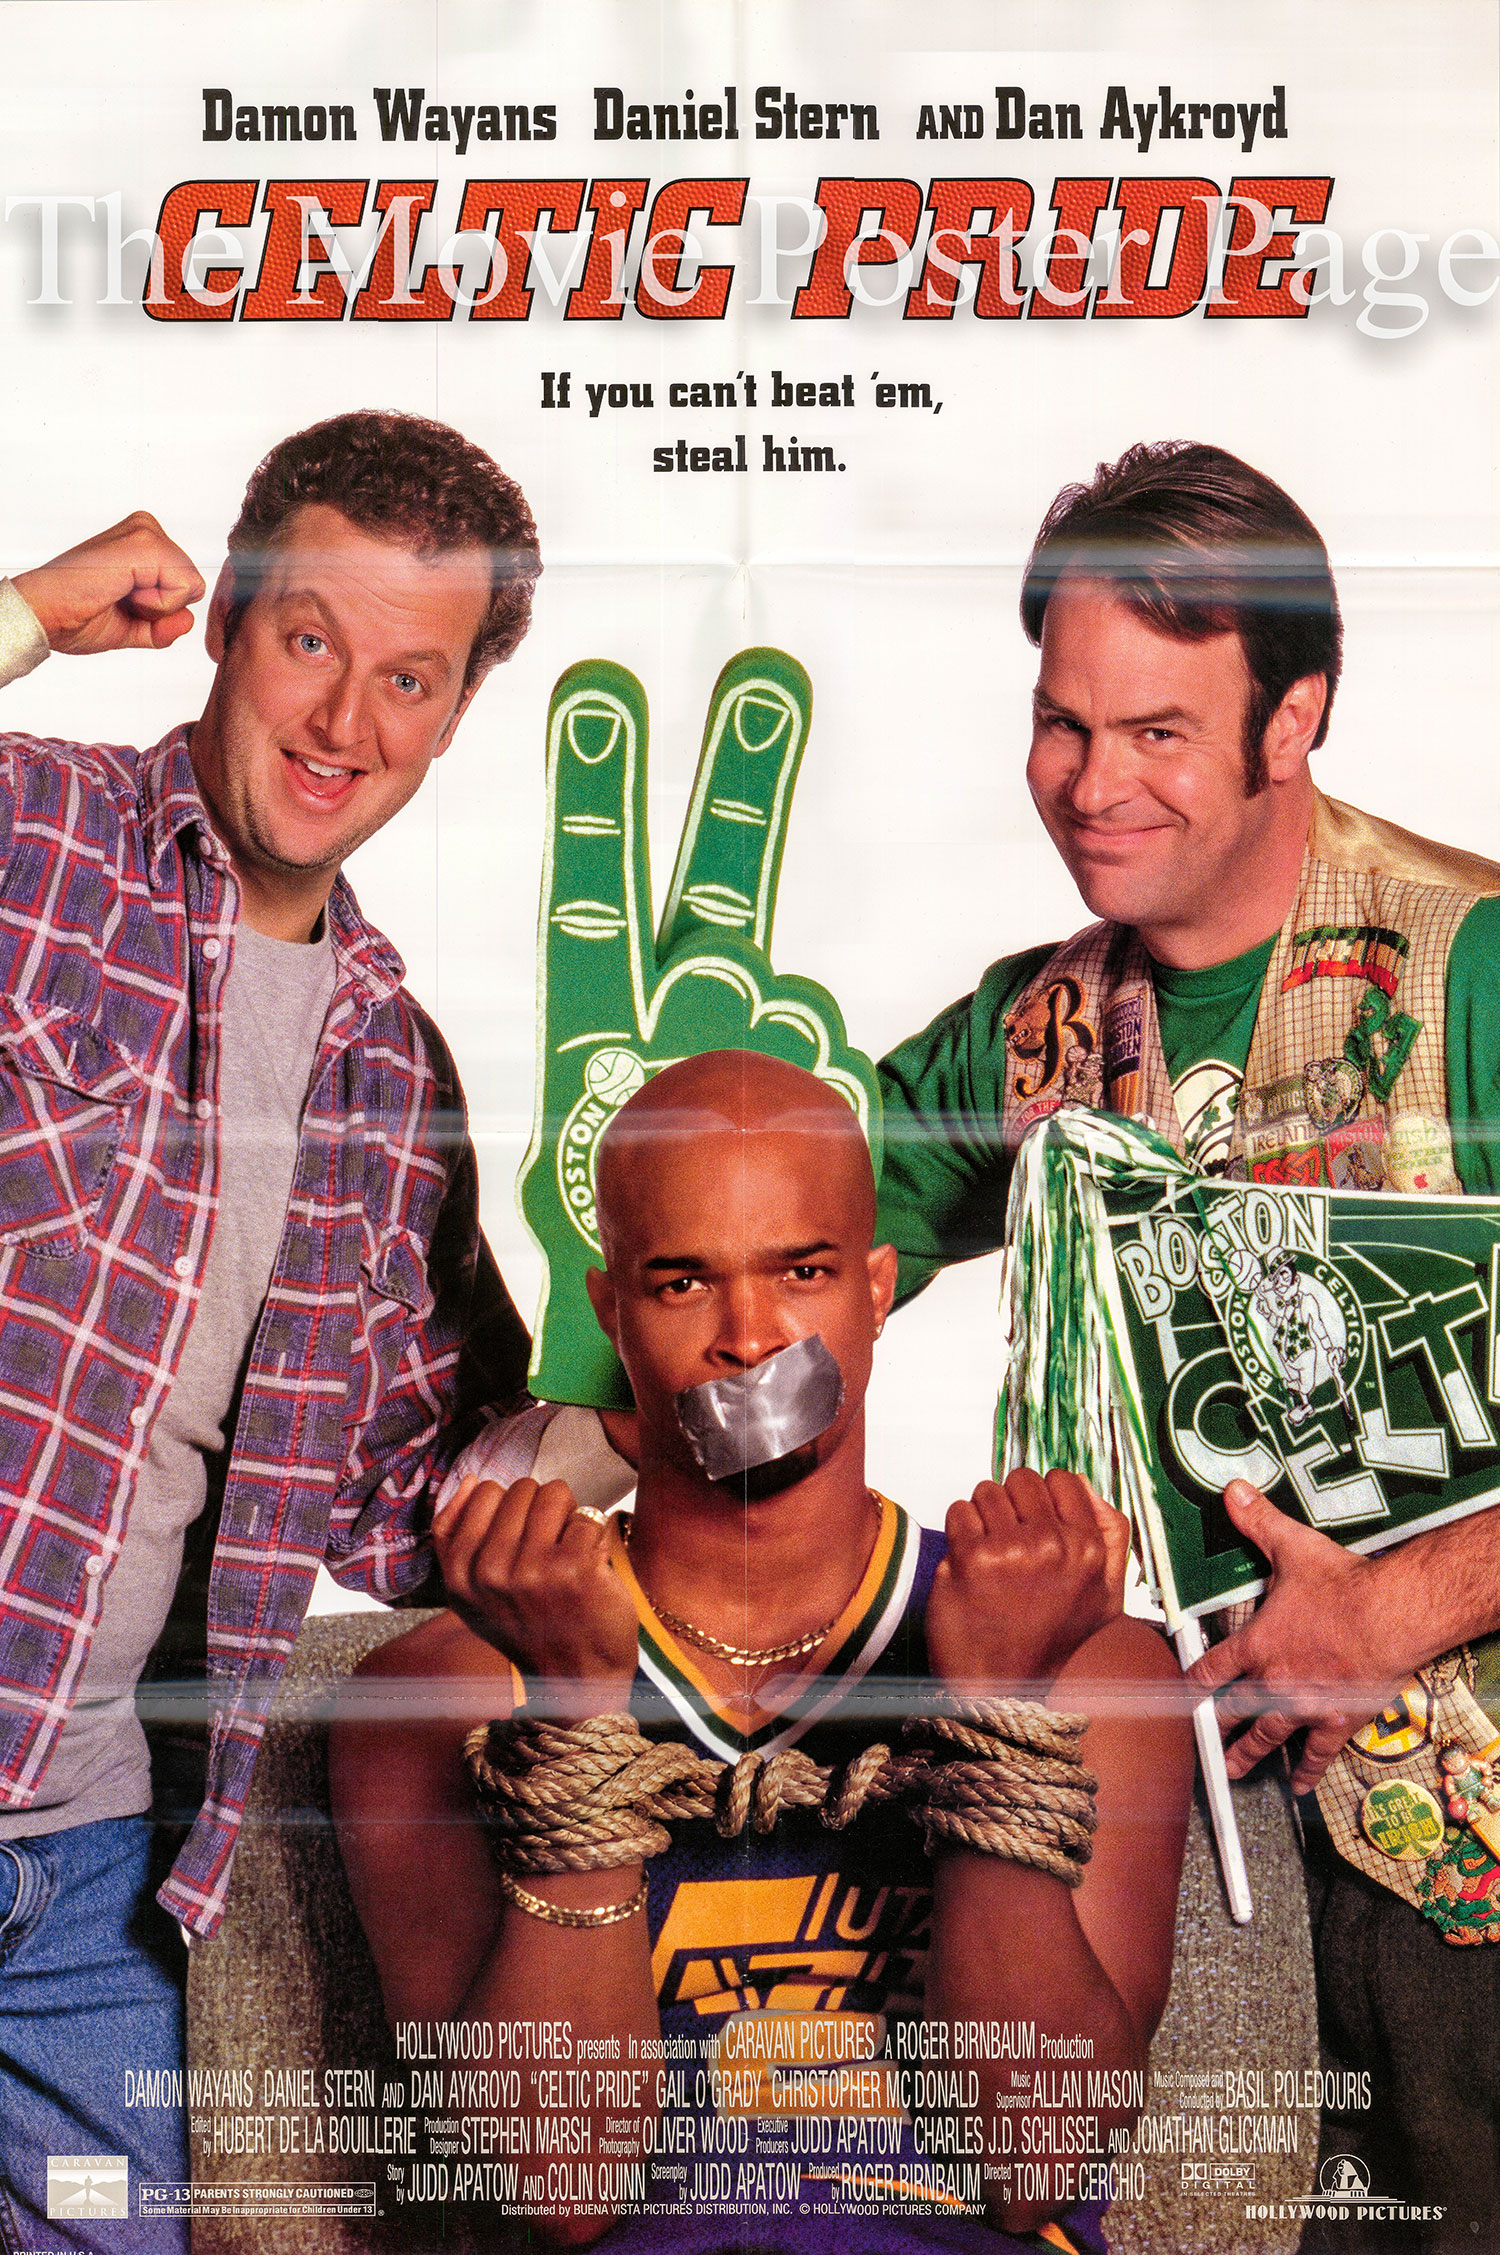 Pictured is a US promotional poster for the 1996 Tom De Cerchio film Celtic Pride starring Damon Wayans.